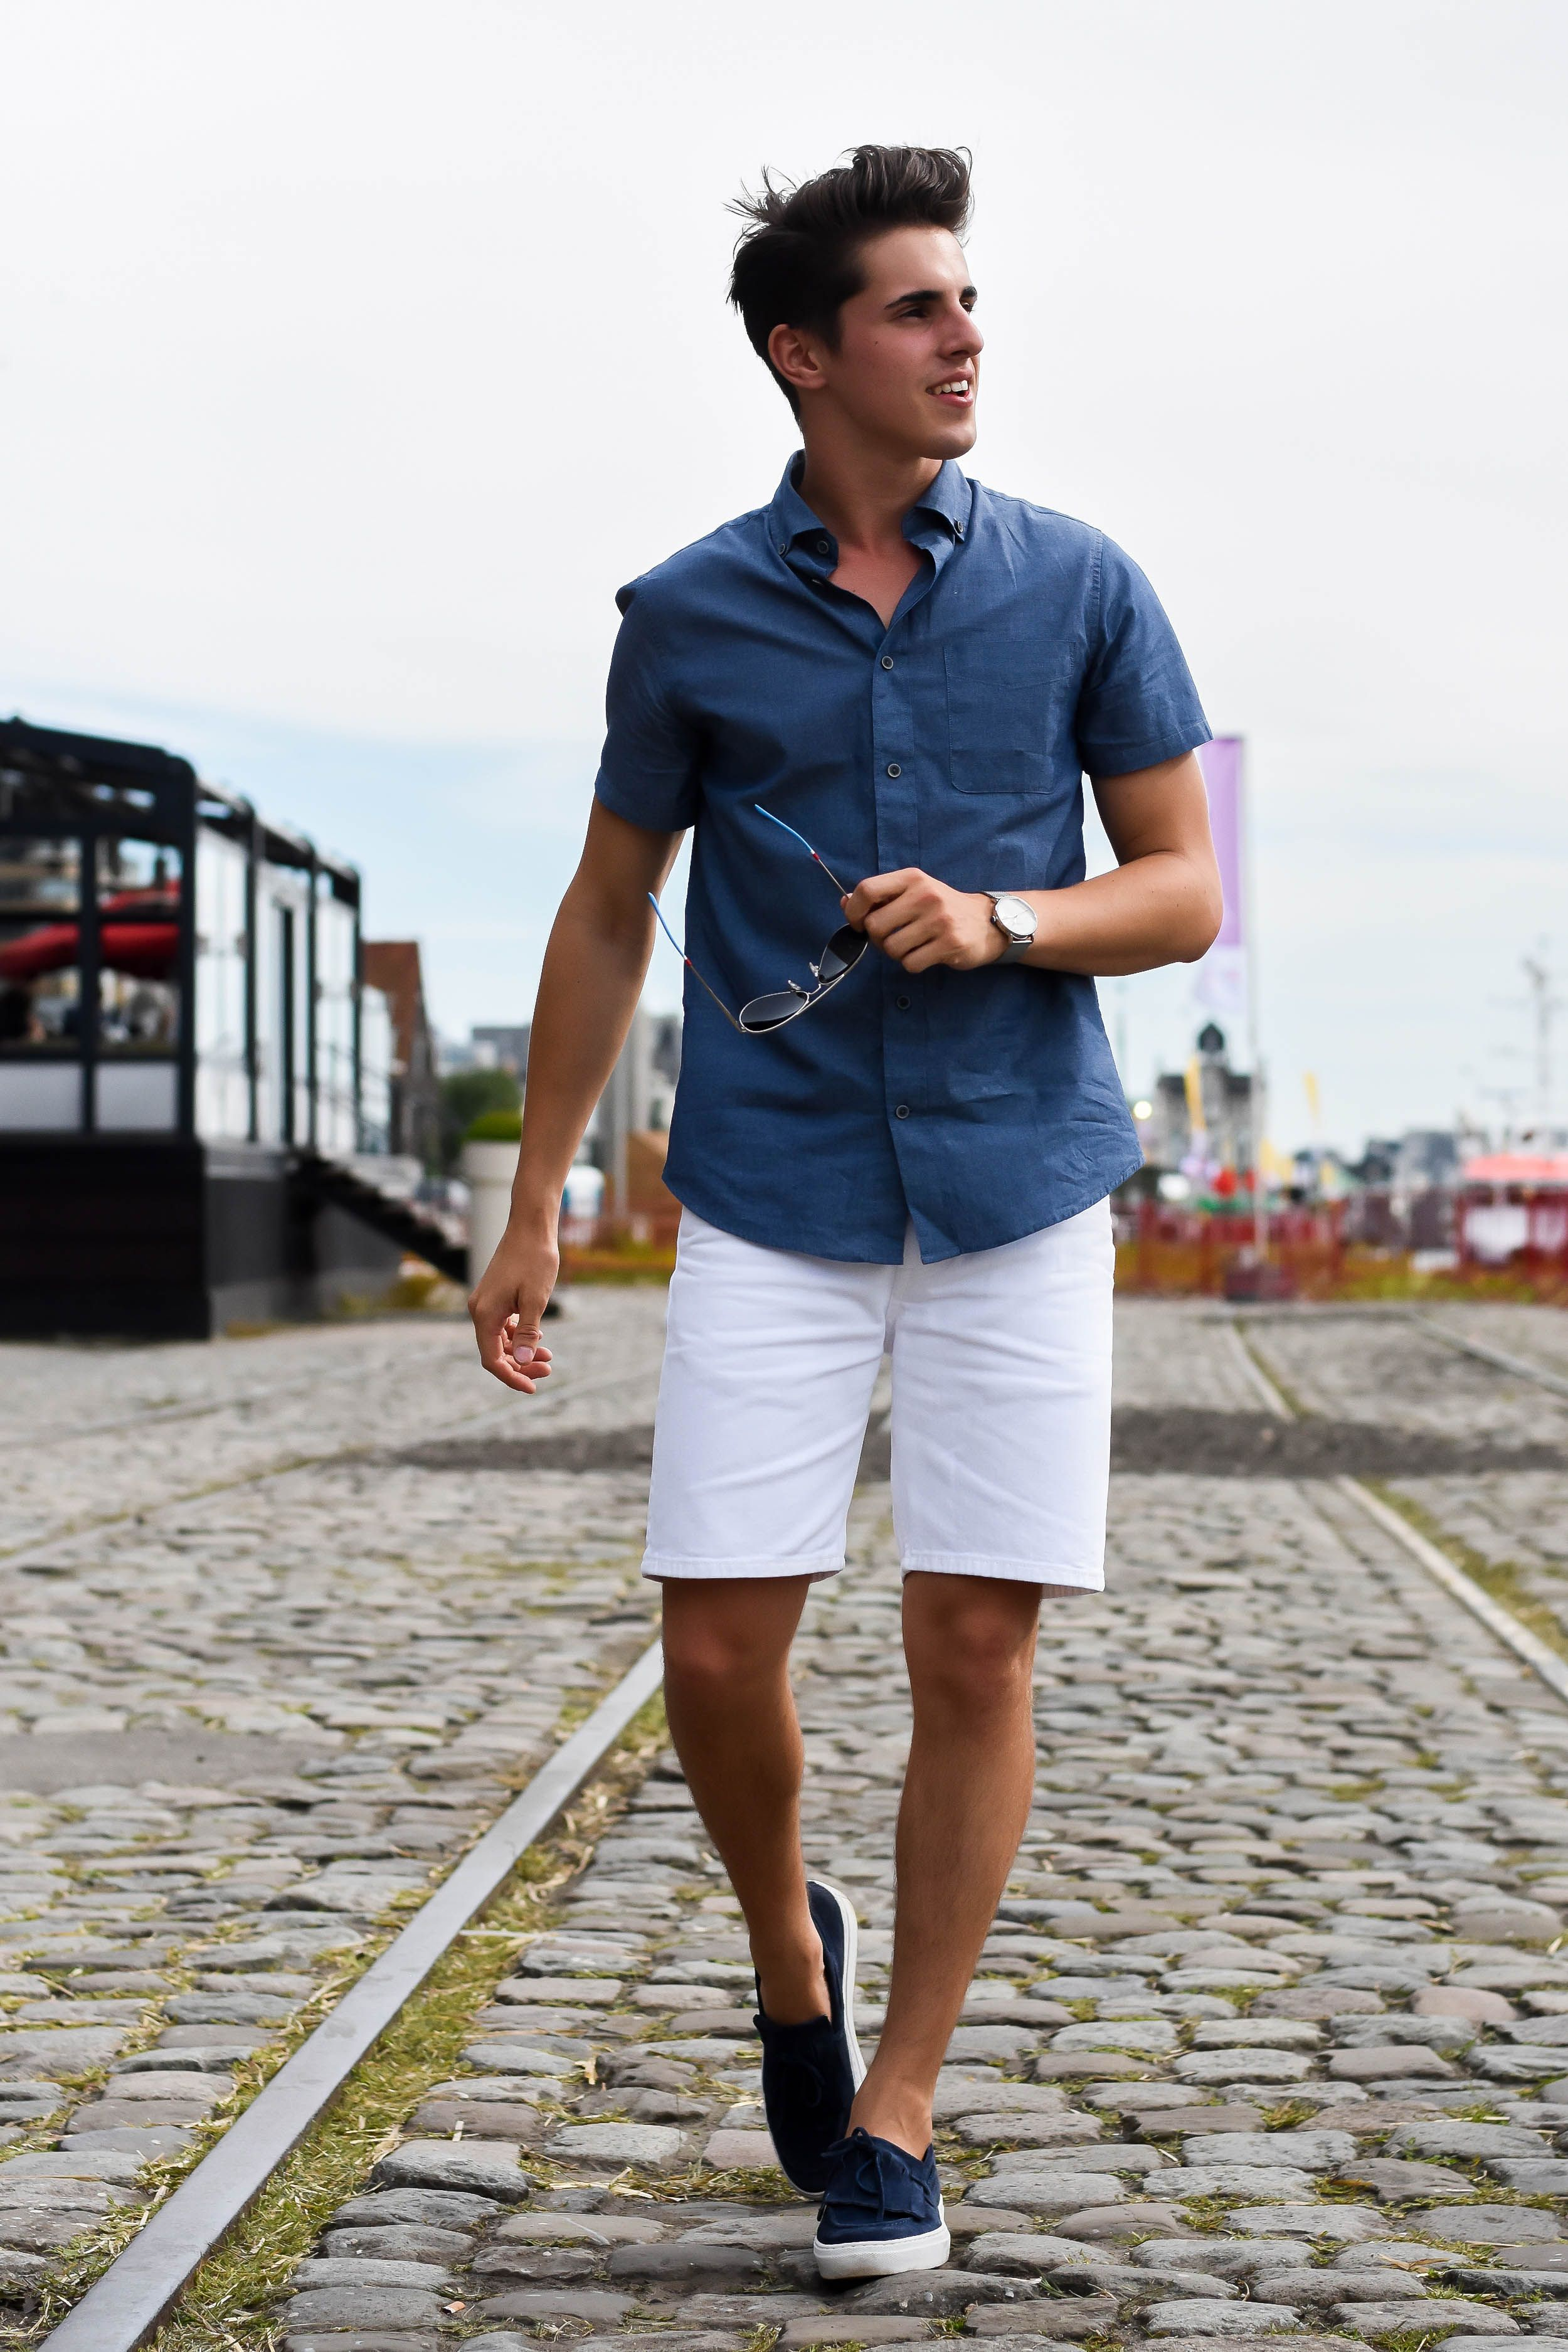 Summer and fashion don't always go hand in hand for men. Looking good comes easy when the temperatures drop. You can let your inner lumberjack shine, and chances are you'll look fine. But Summer that's a different monster. Off the top of the head, you probably associate Summer styles with the preppy look: pink shorts, [ ].